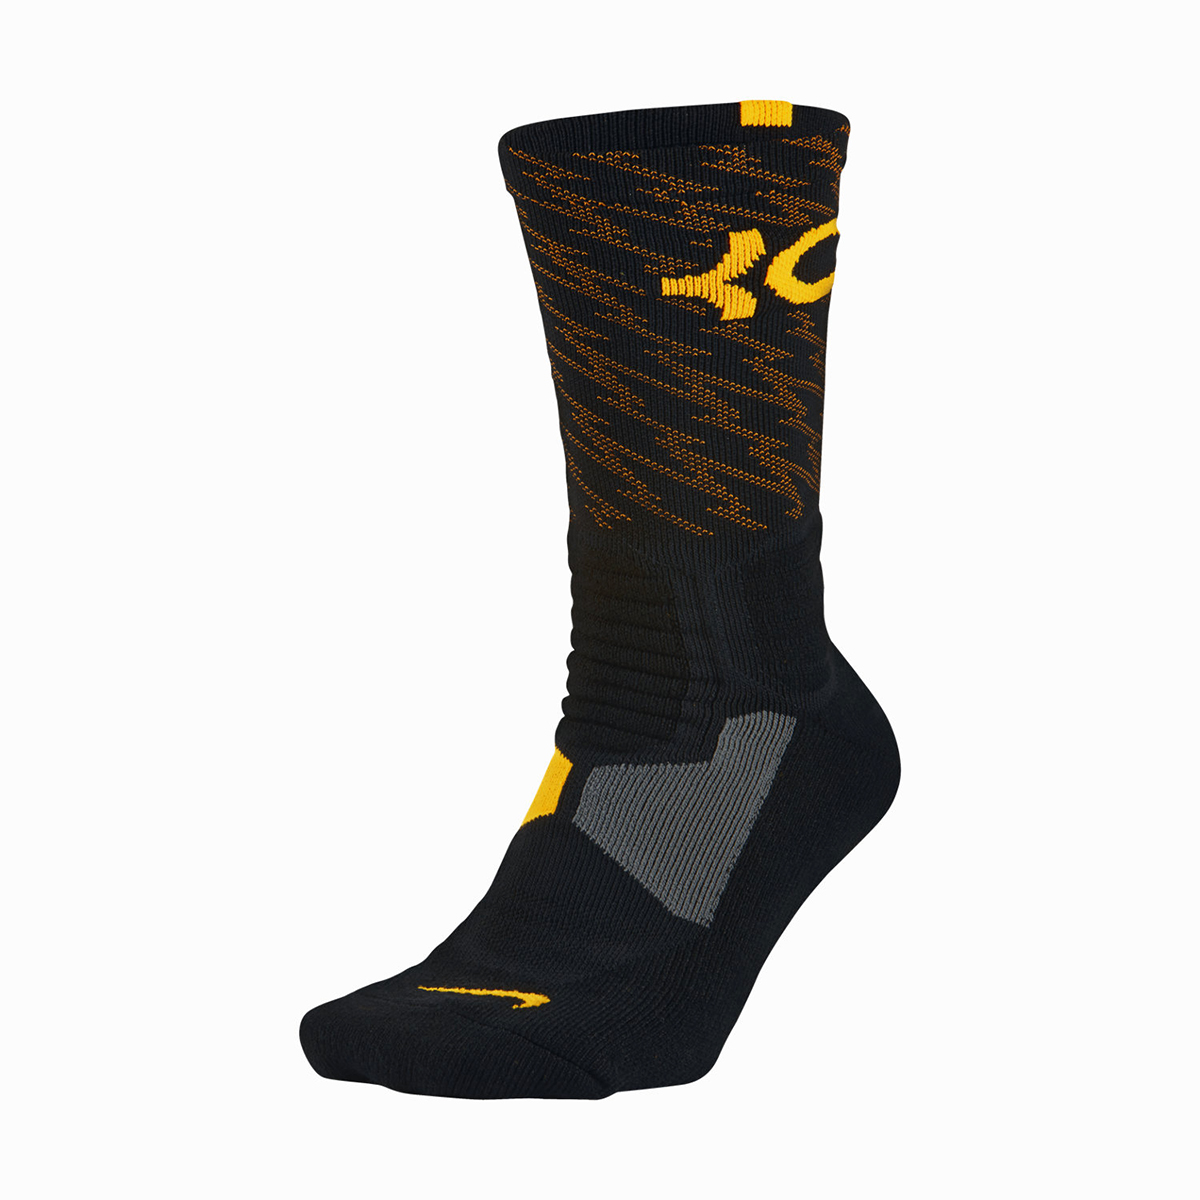 Nike KD Hyper Elite Basketball Crew Socks - BASKETBALL ...